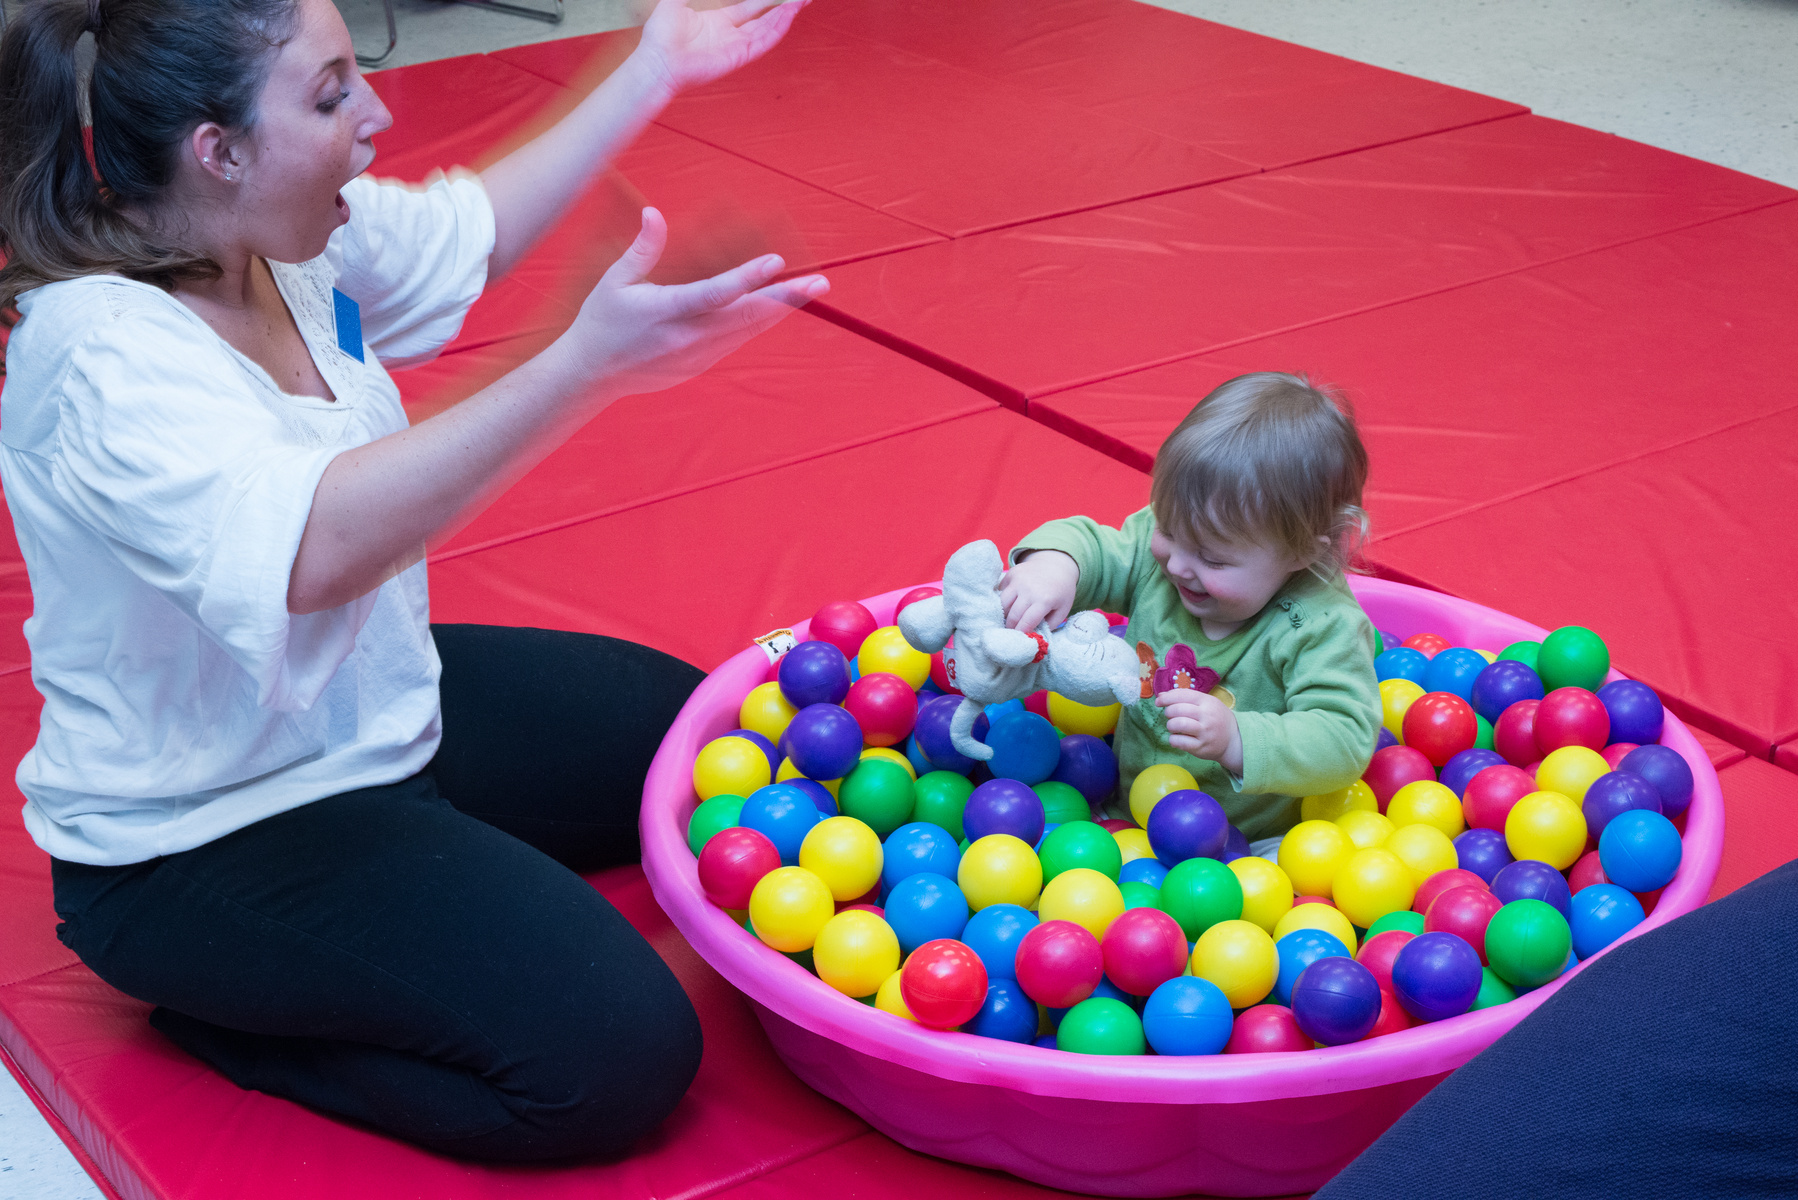 An Occupational Therapist plays with a toddler sitting in a pink wading pool full of plastic balls